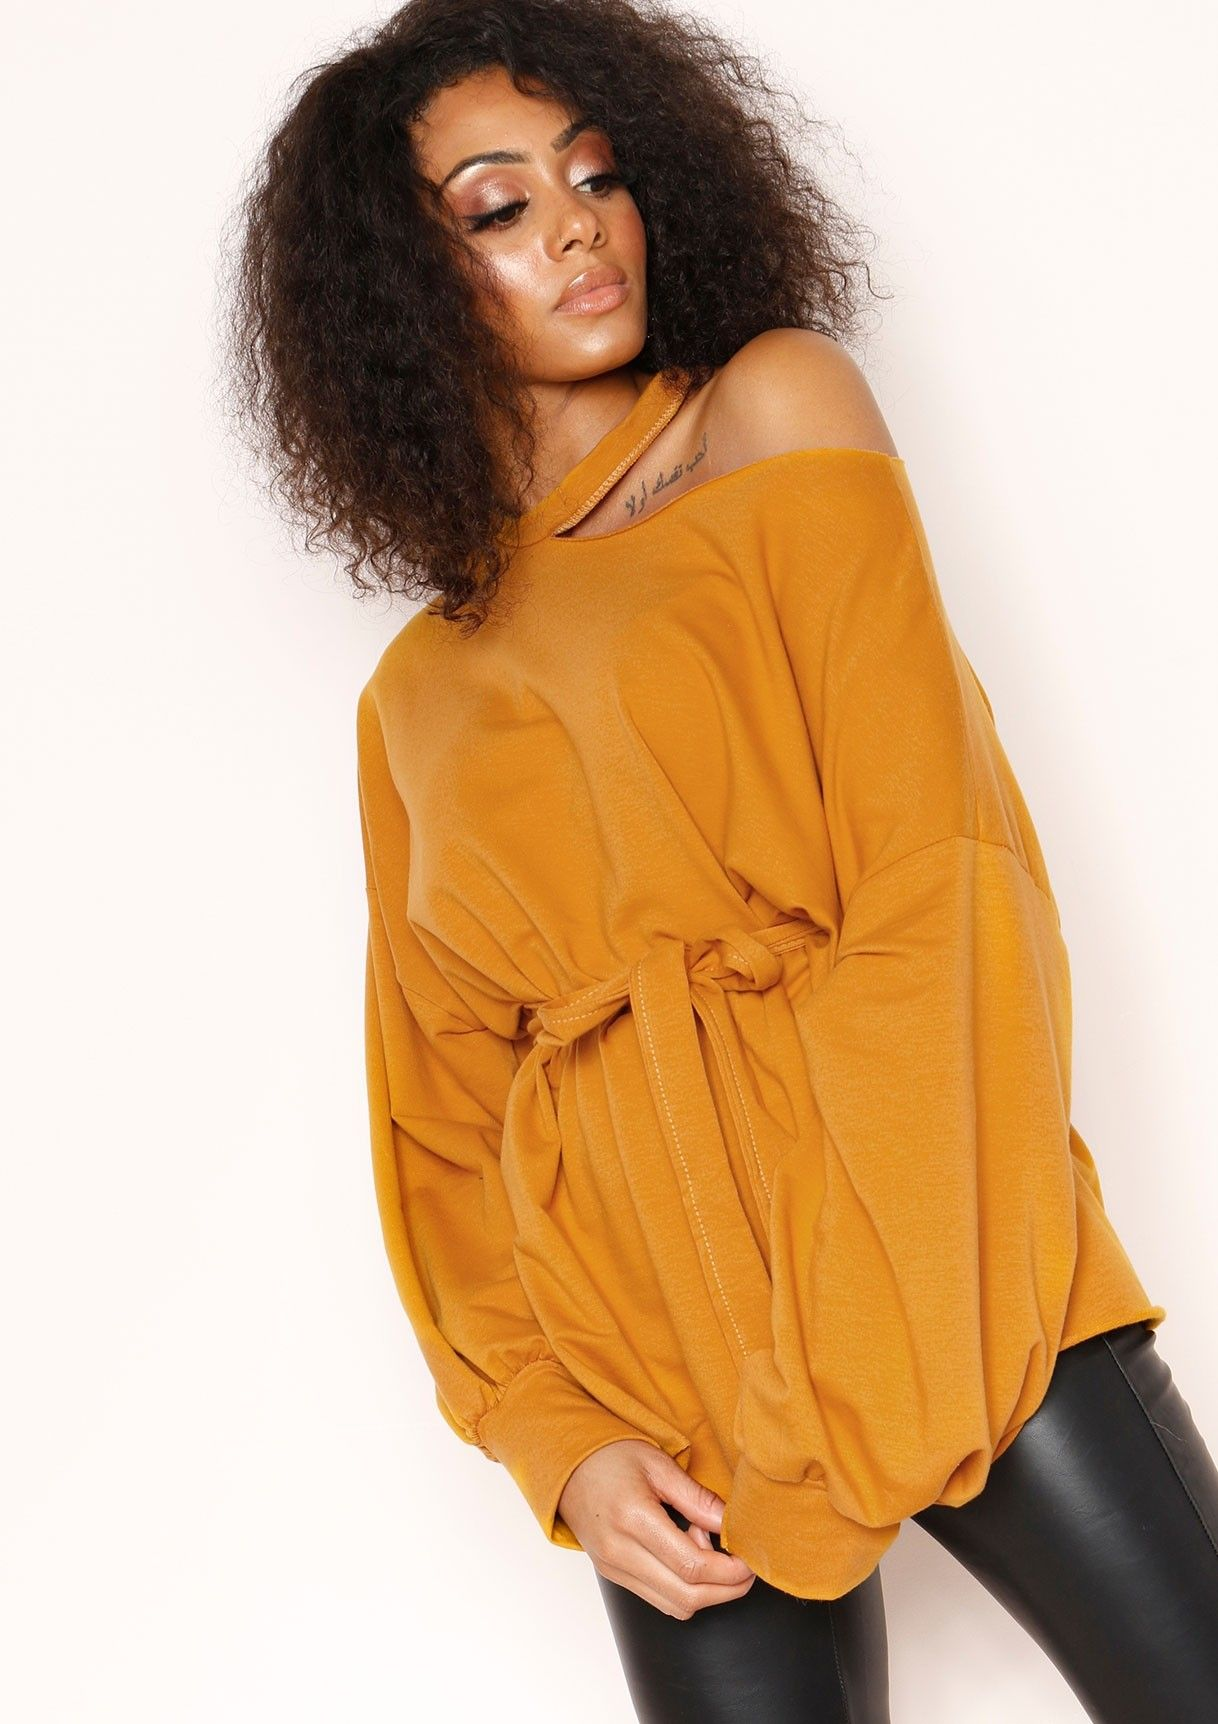 ffb9fbe317b3 Codie Mustard Cut Out Oversized Jumper | ⚡️express delivery ...